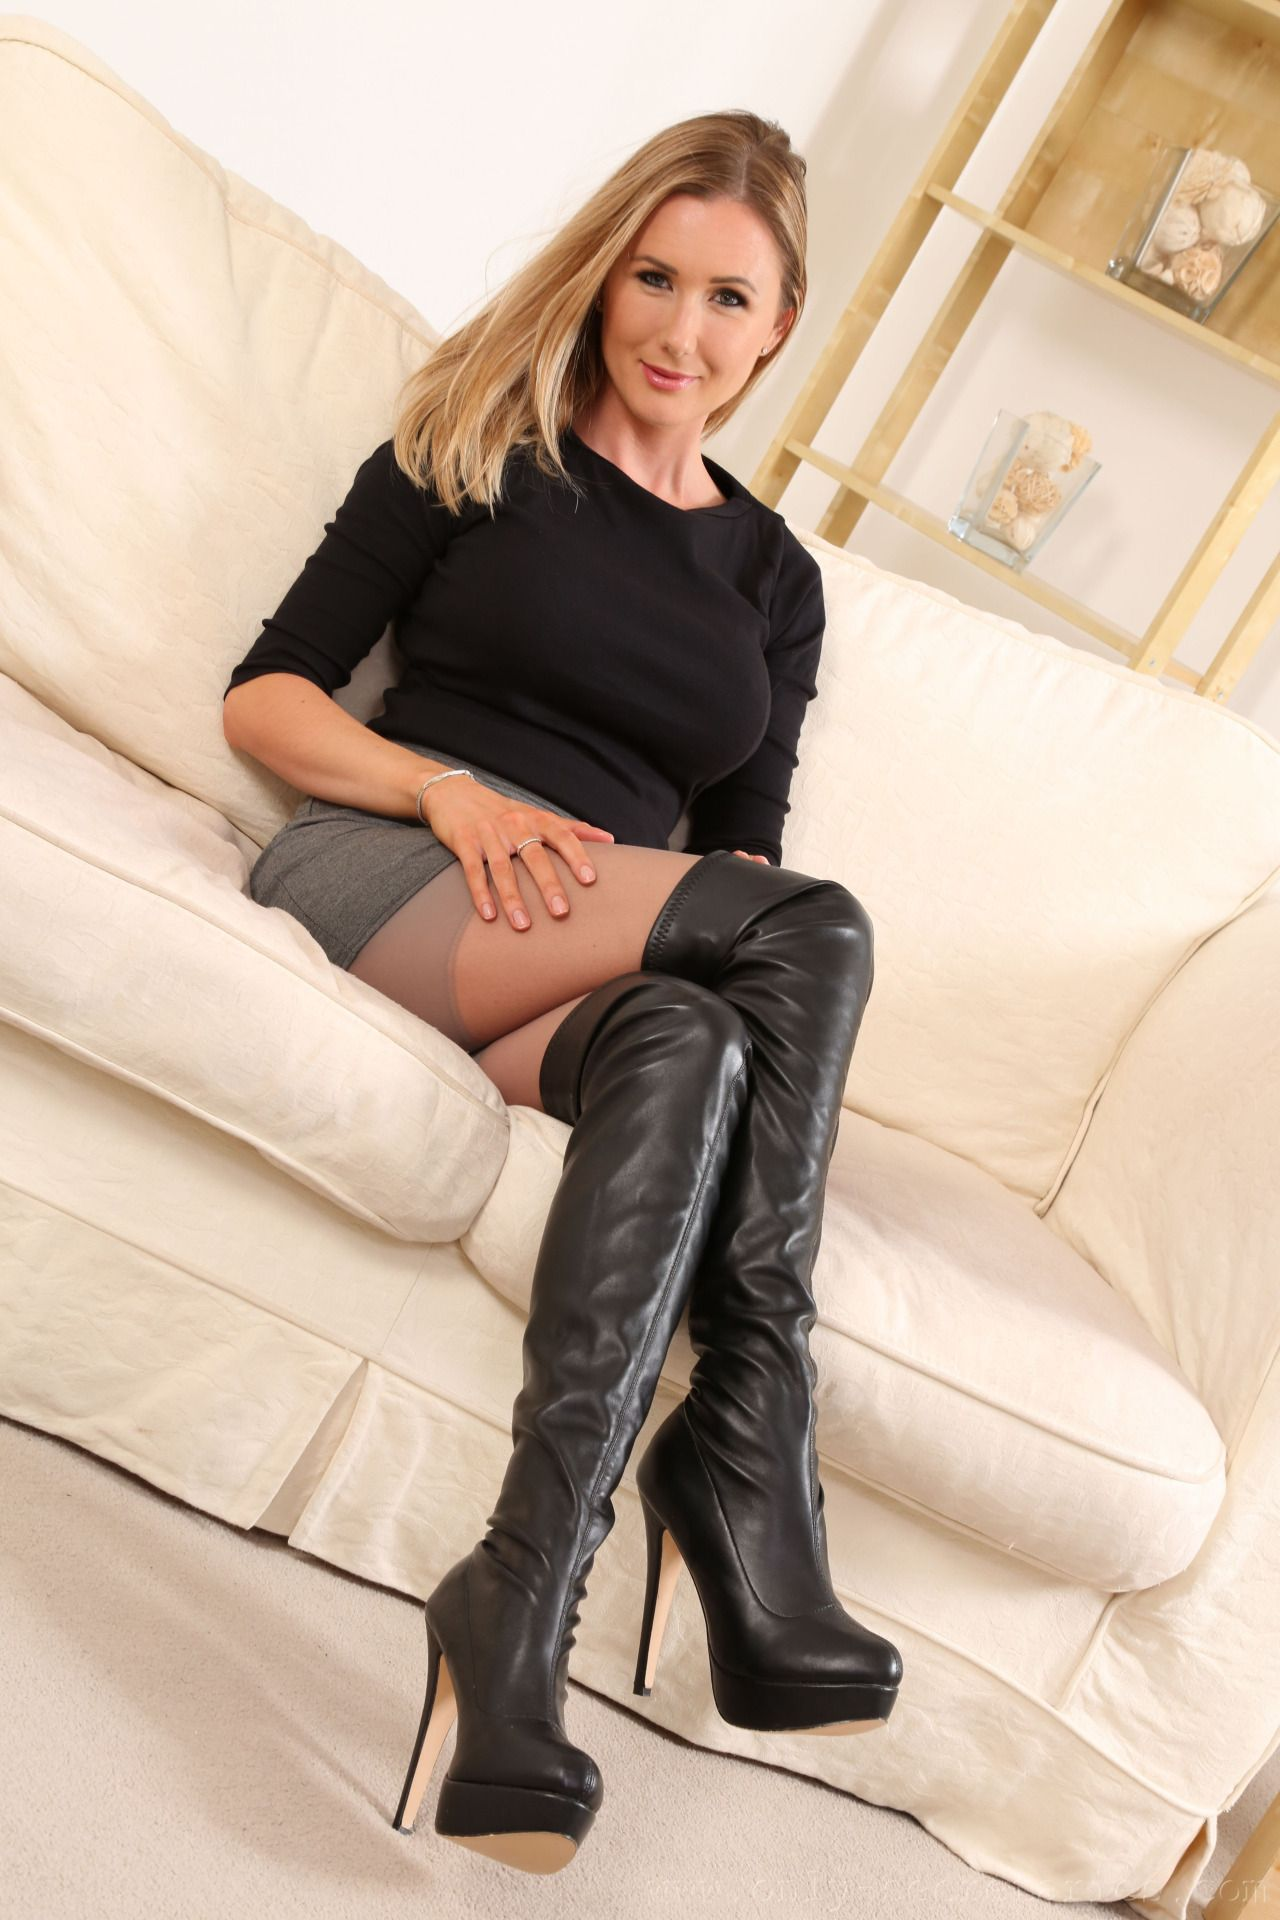 Should I be ok with my wife wearing thigh high boots out?